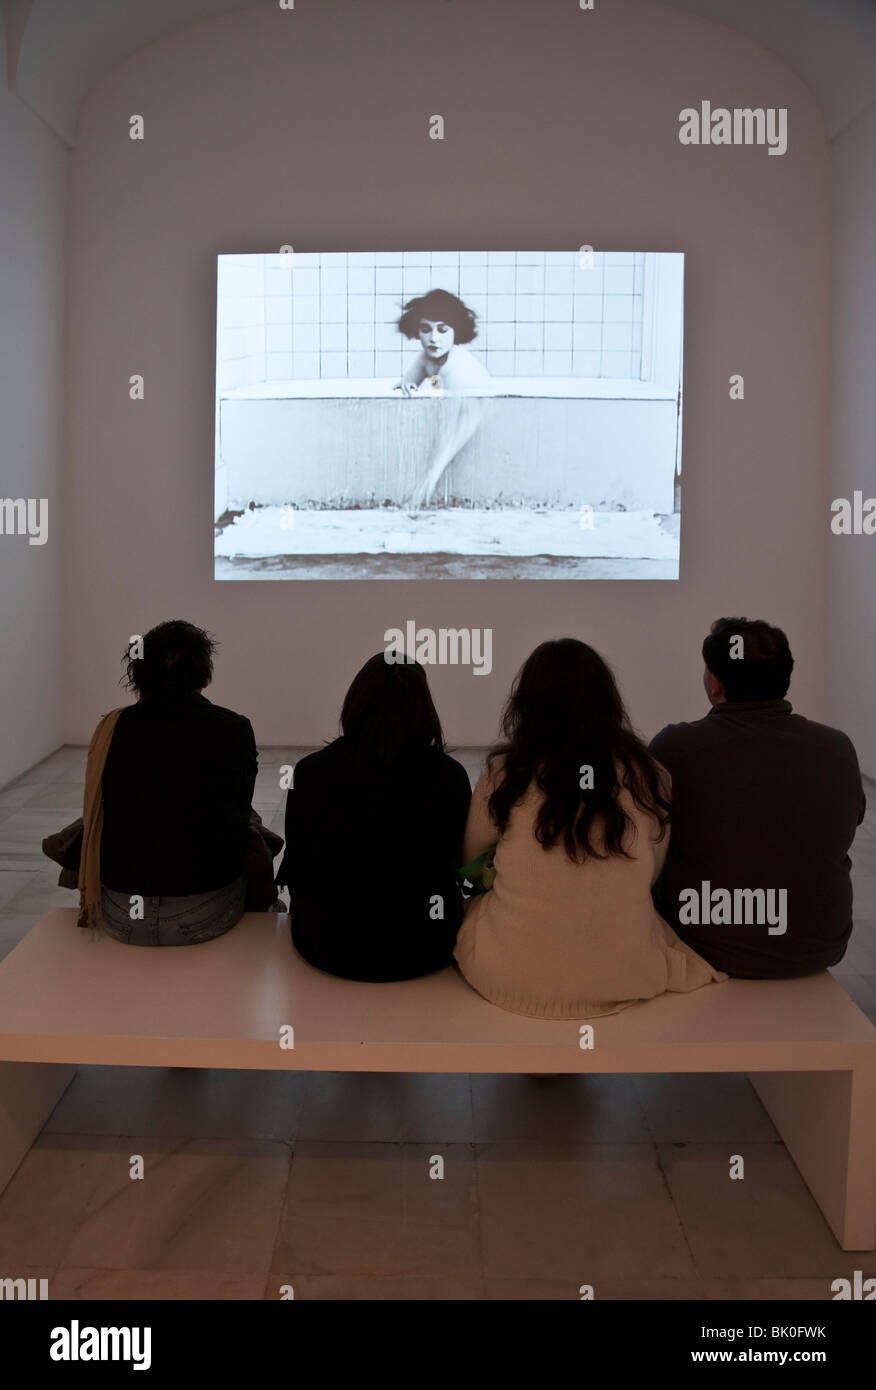 Visitors watching a Buster Keaton movie in the Centro de Arte Reina Sofia, Madrid, Spain - Stock Image